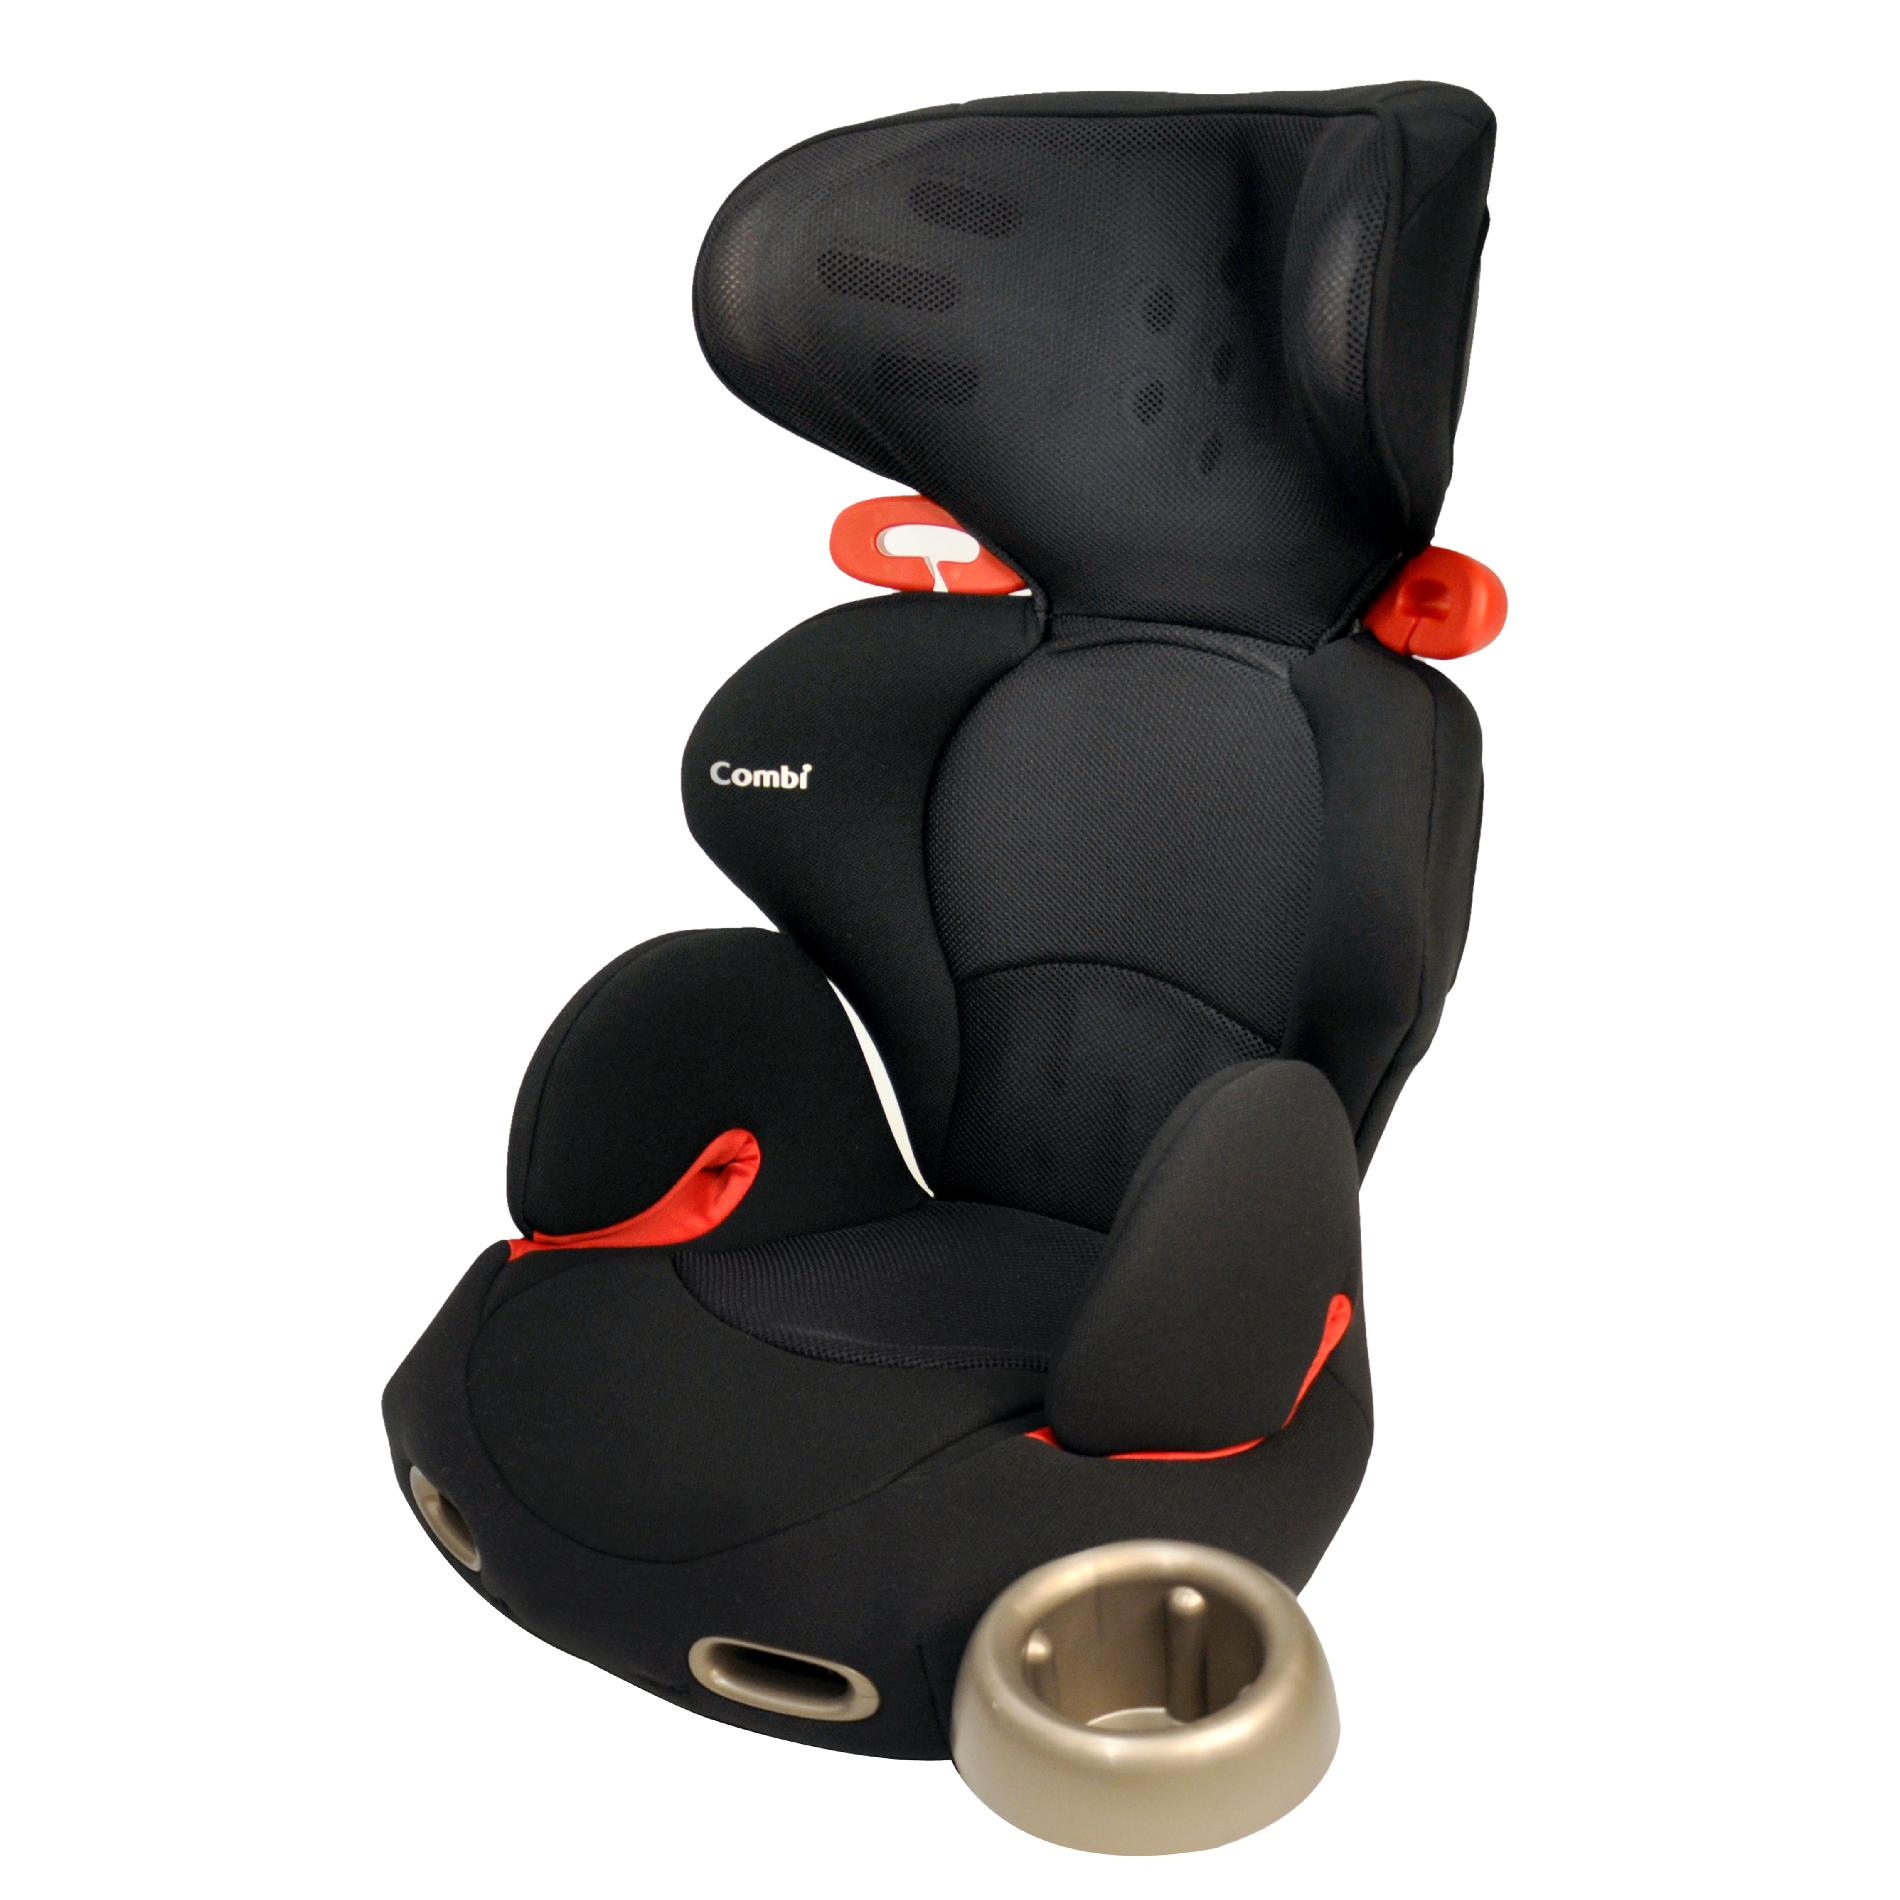 Combi Kobuk Air-Thru Booster Car Seat